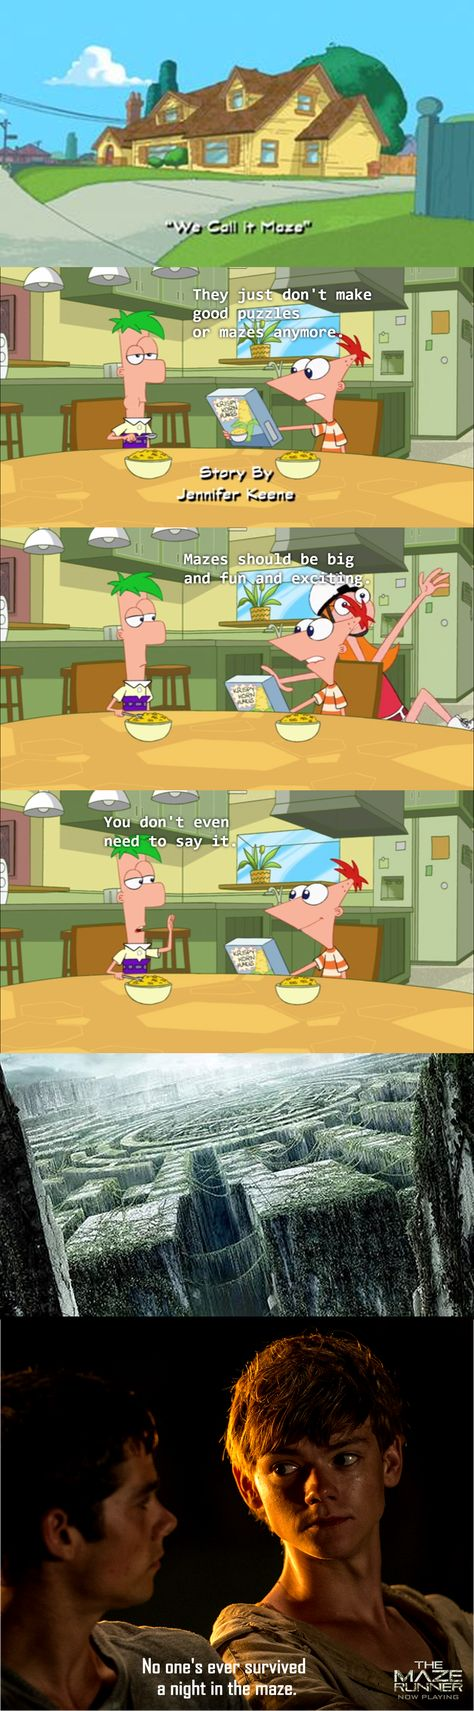 210 Phineas And Ferb C Ideas Phineas And Ferb Disney And Dreamworks Phineas And Ferb Memes